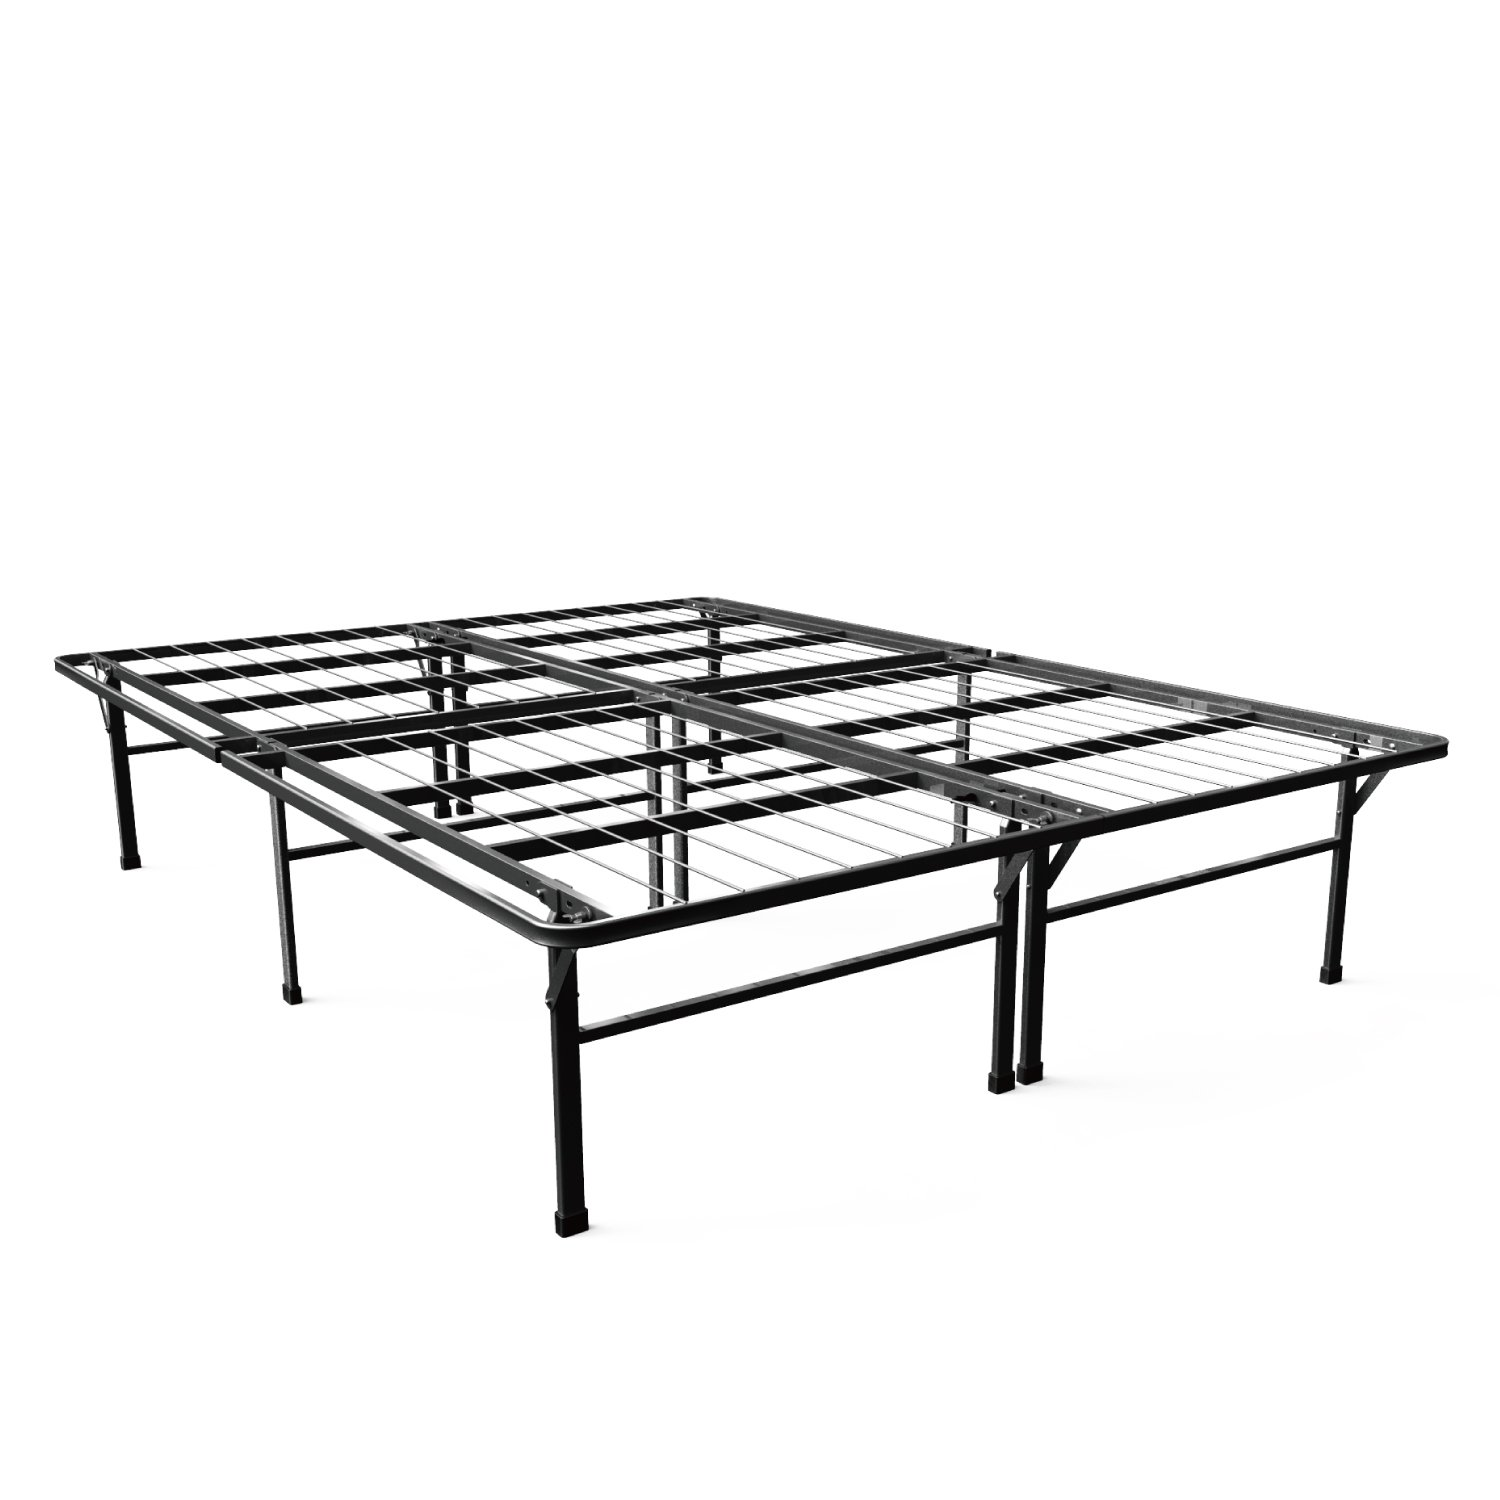 Zinus 16 Inch SmartBase Deluxe Mattress Foundation, 2 Extra Inches high for Under-bed Storage, Platform Bed Frame, Box Spring Replacement, Strong, Sturdy, Quiet Noise-Free, Queen